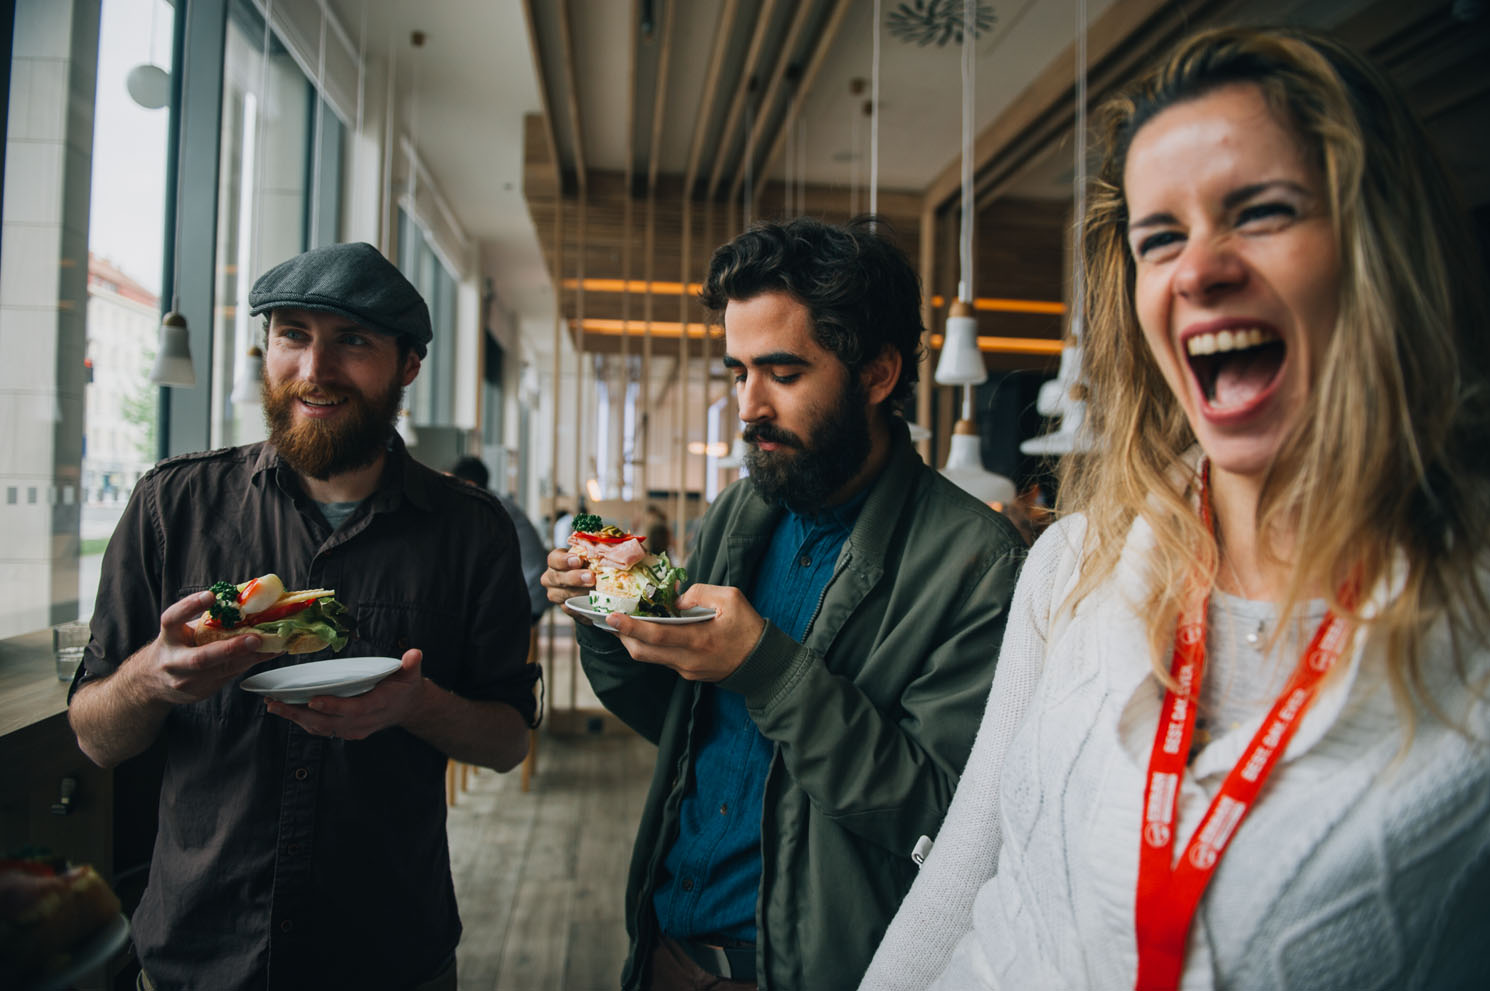 Enjoying an open-face sandwich with the Urban Adventures team on our Prague Food By Foot tour